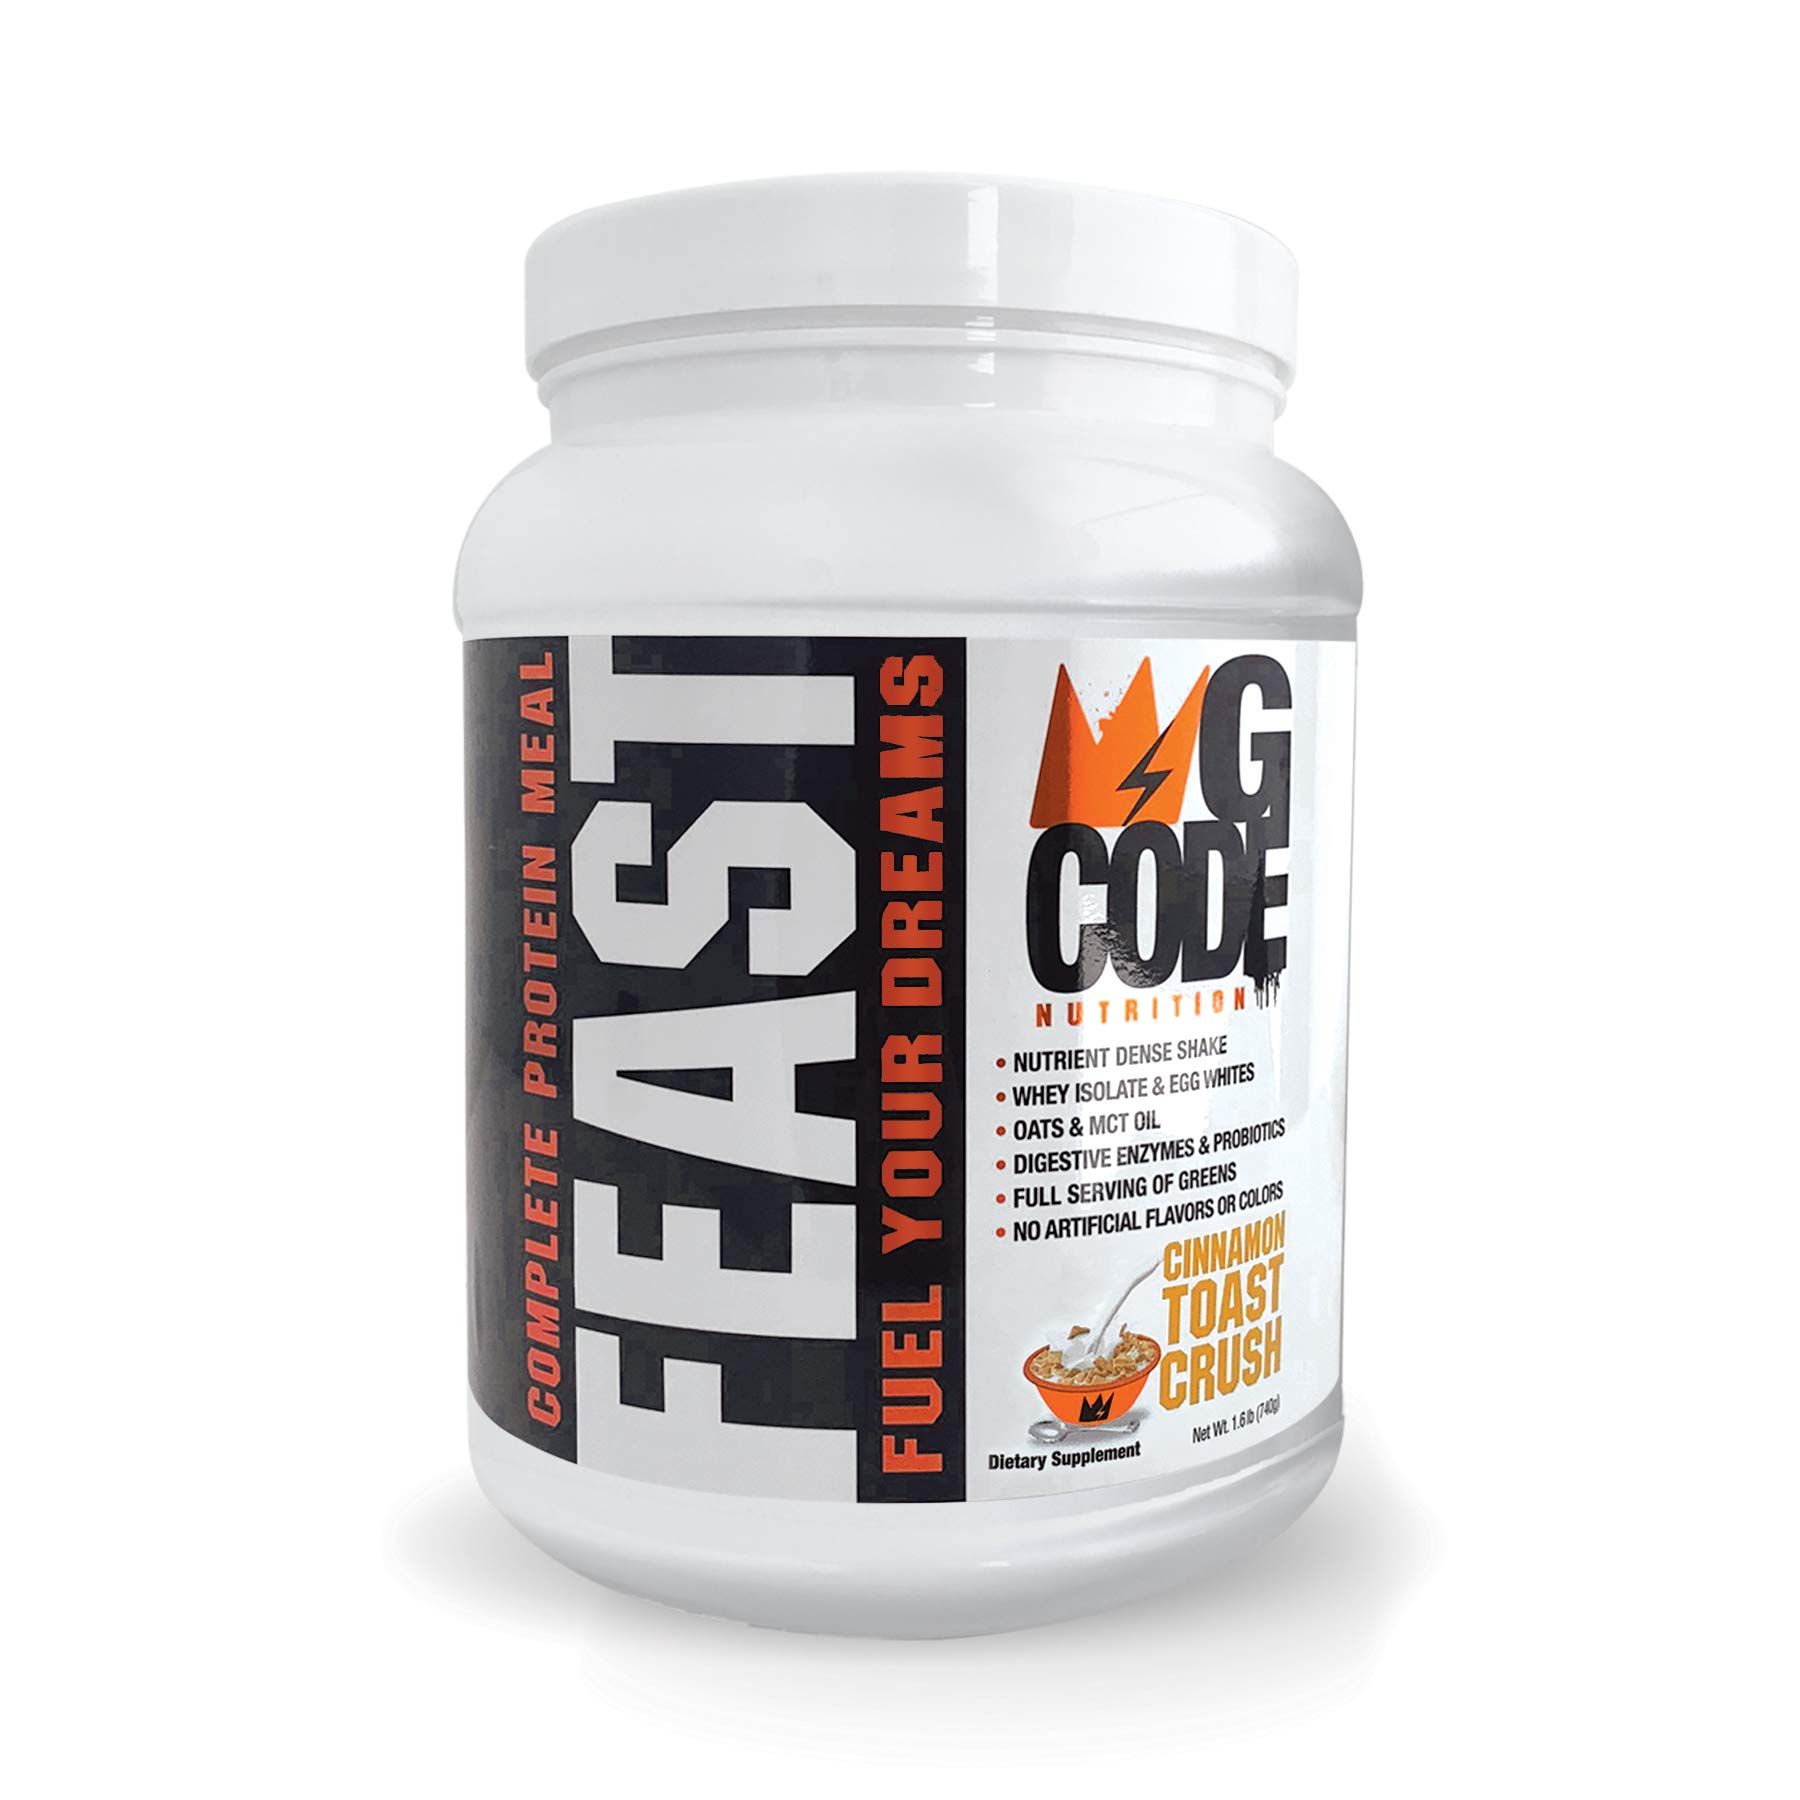 GCode Feast Complete Protein Meal (Cinnamon Toast Crush) Whey Isolate, Egg Whites, Oats, Organic Greens, MCT Oil, Probiotics, Digestive Enzymes